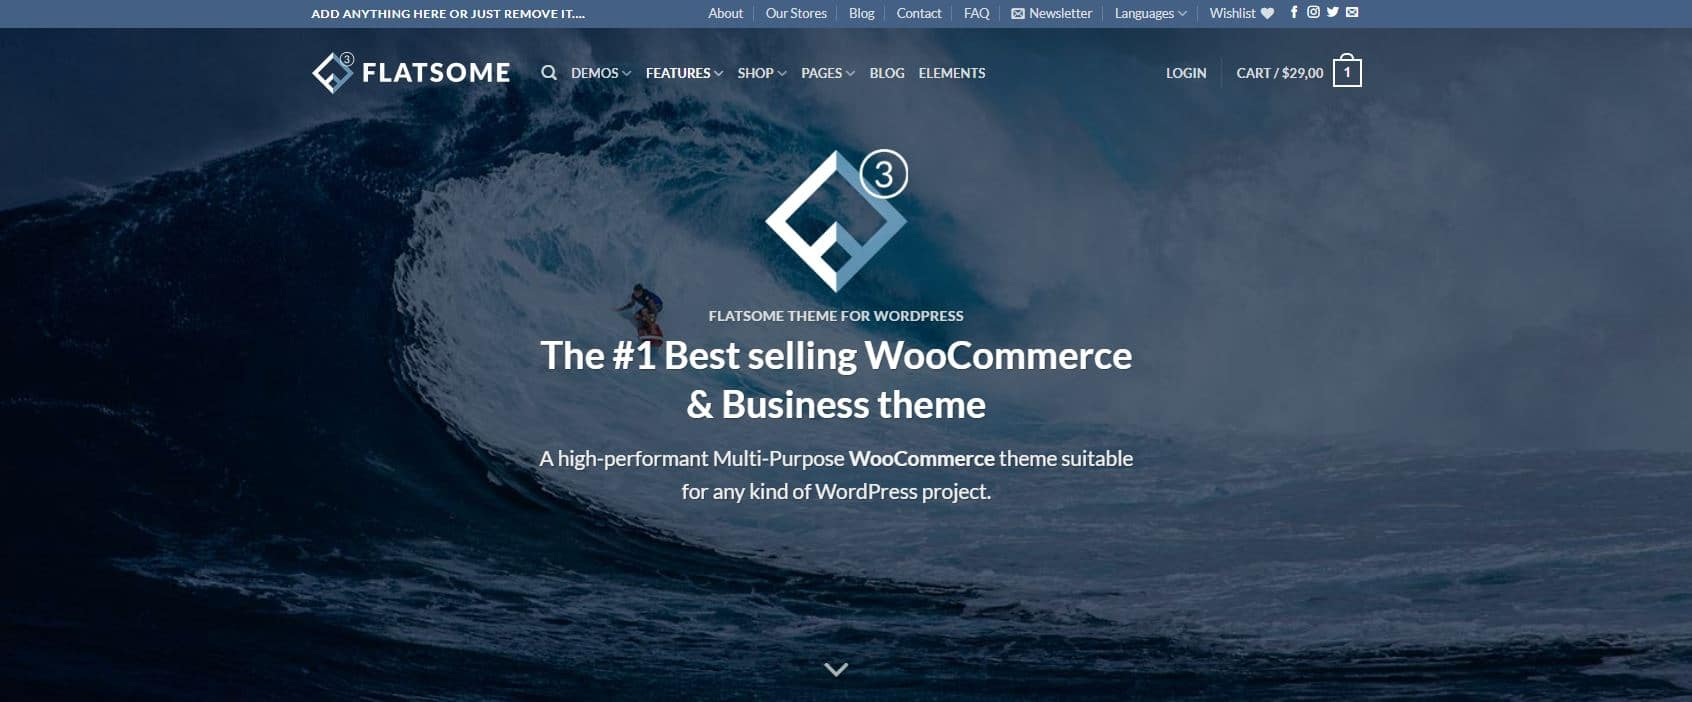 Flatsome-wordpress-theme